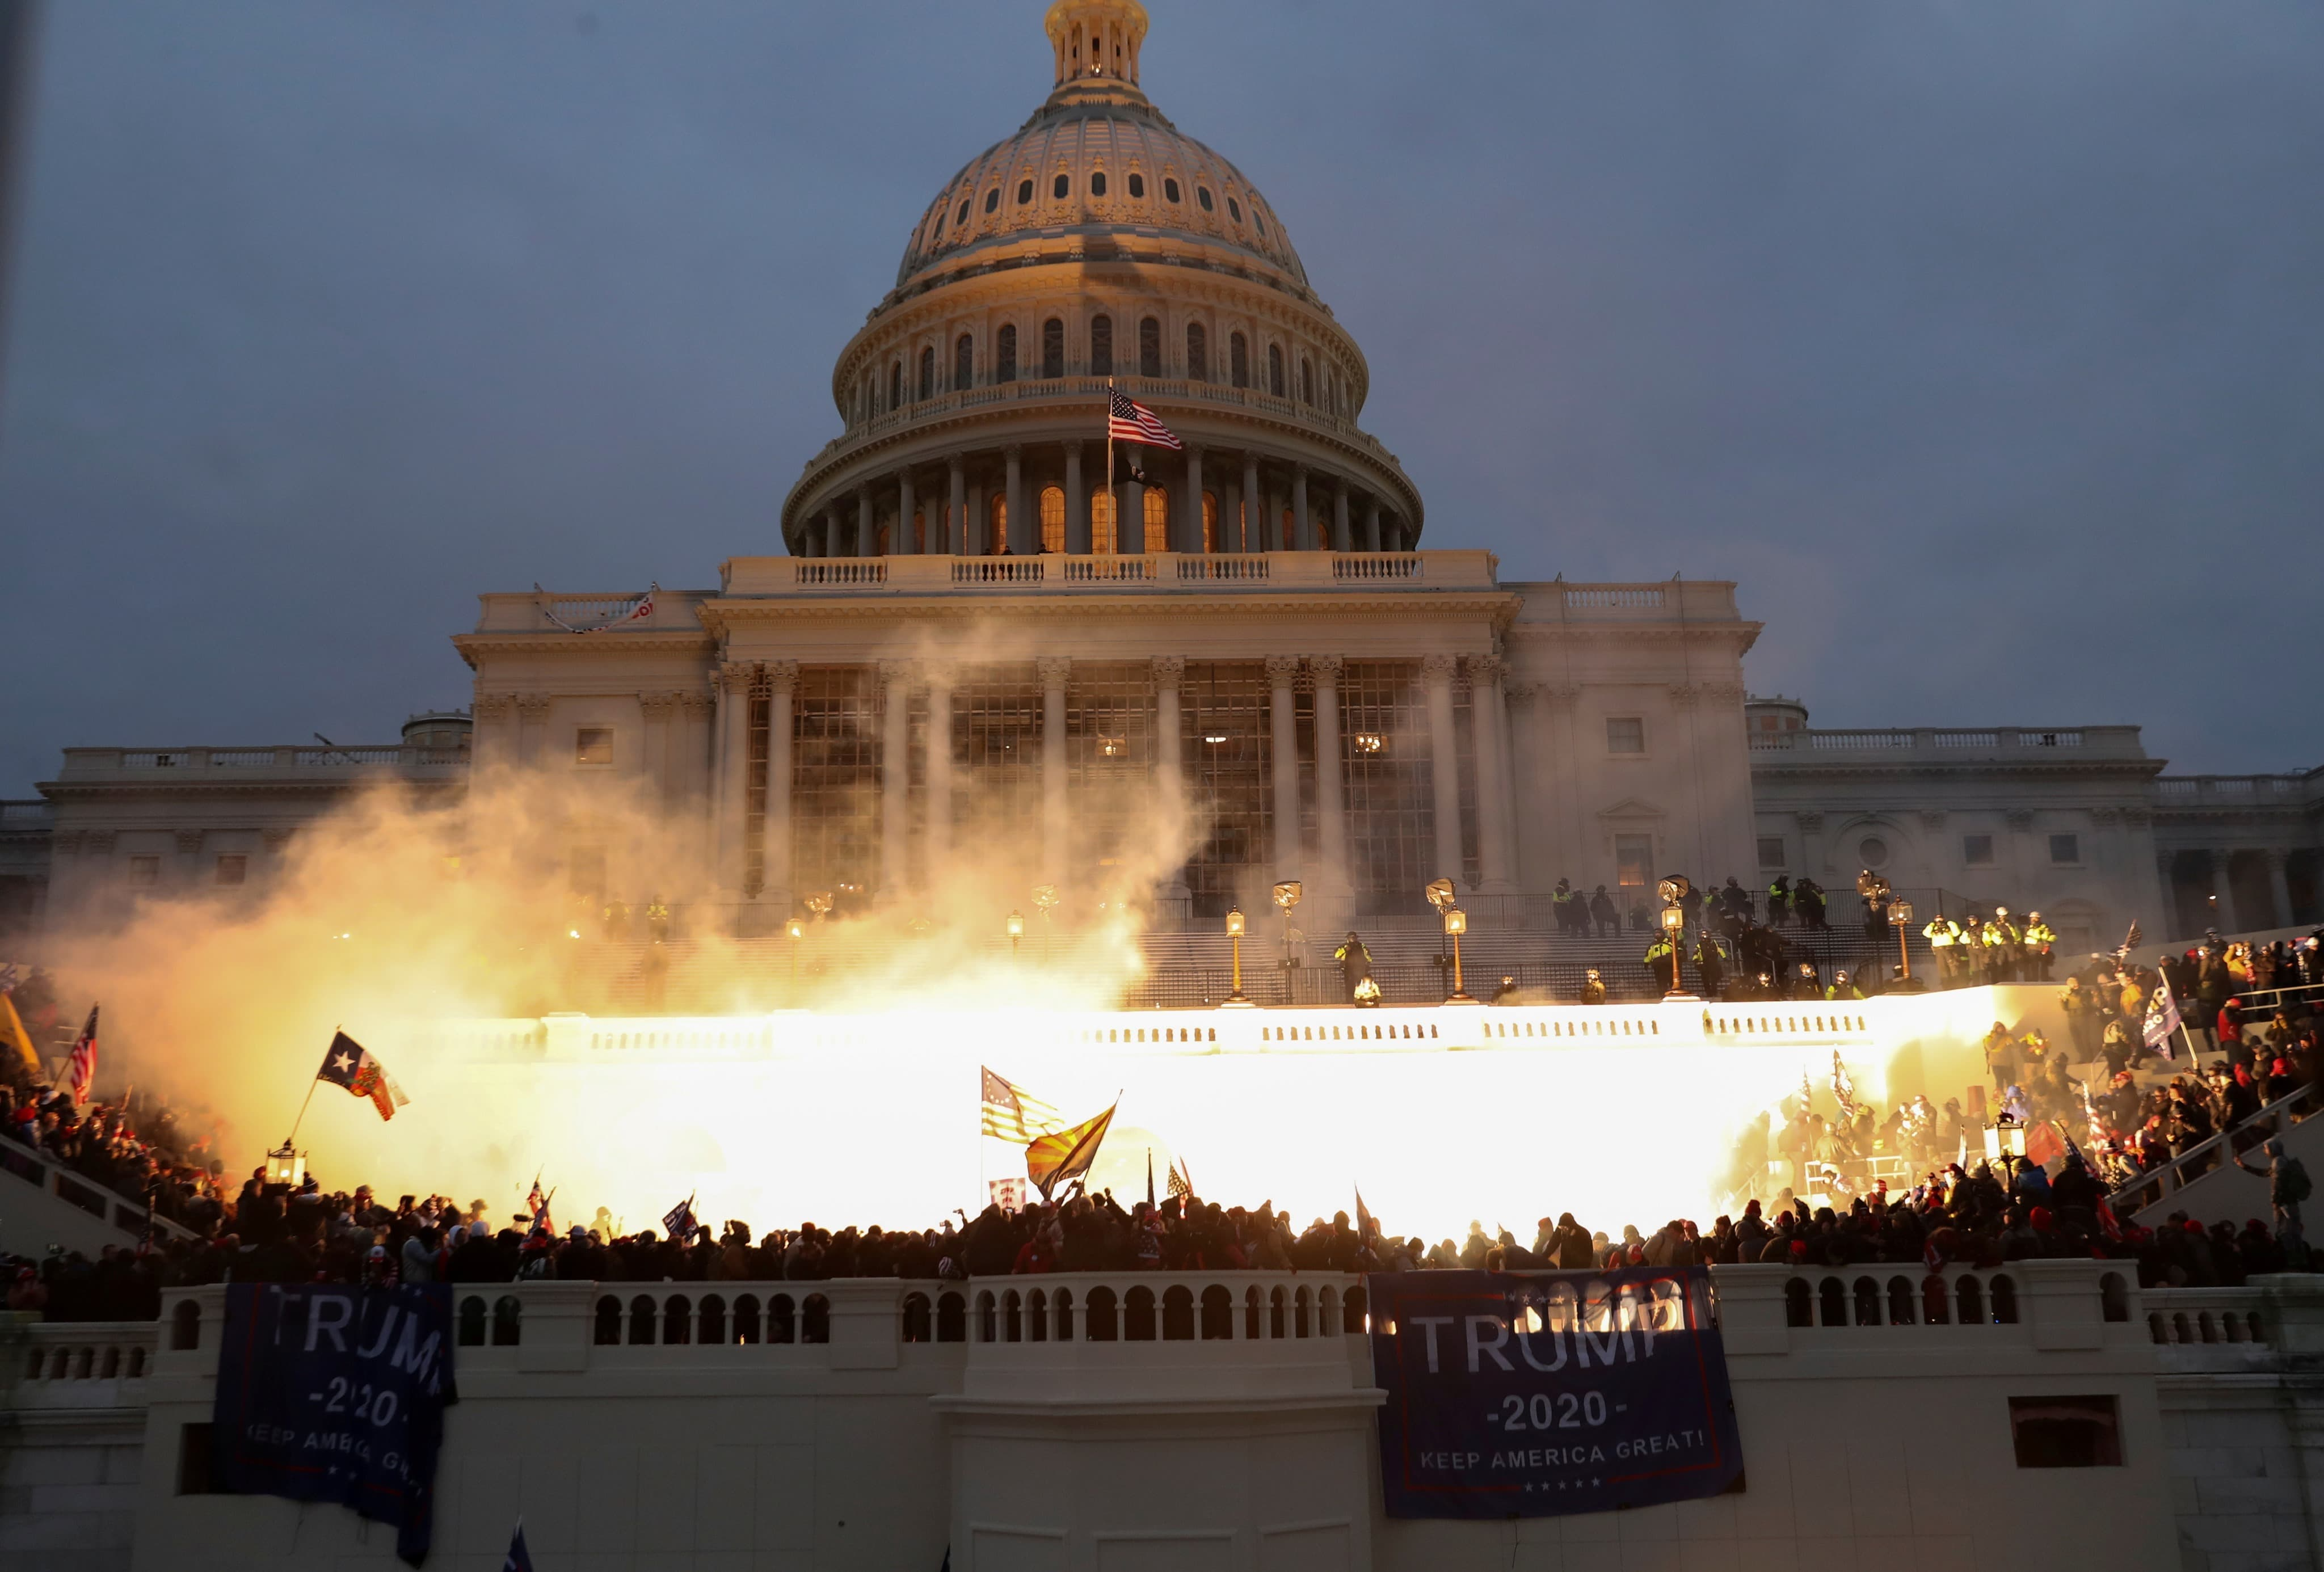 An explosion caused by a police munition is seen while supporters of US President Donald Trump gather in front of the US Capitol Building in Washington, January 6. — Reuters